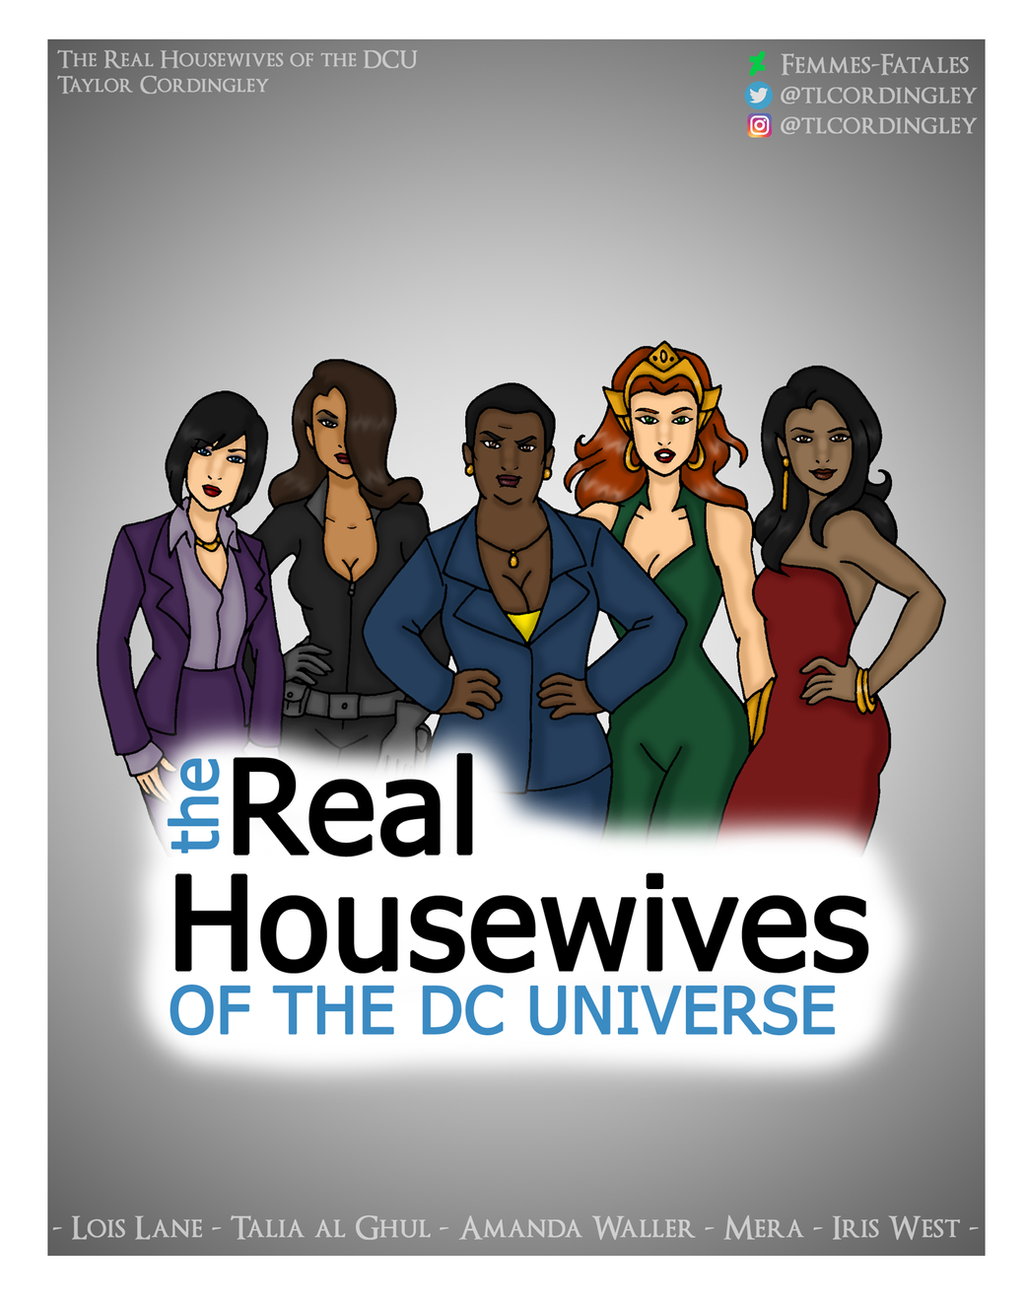 The Real Housewives of the DC Universe by Femmes-Fatales